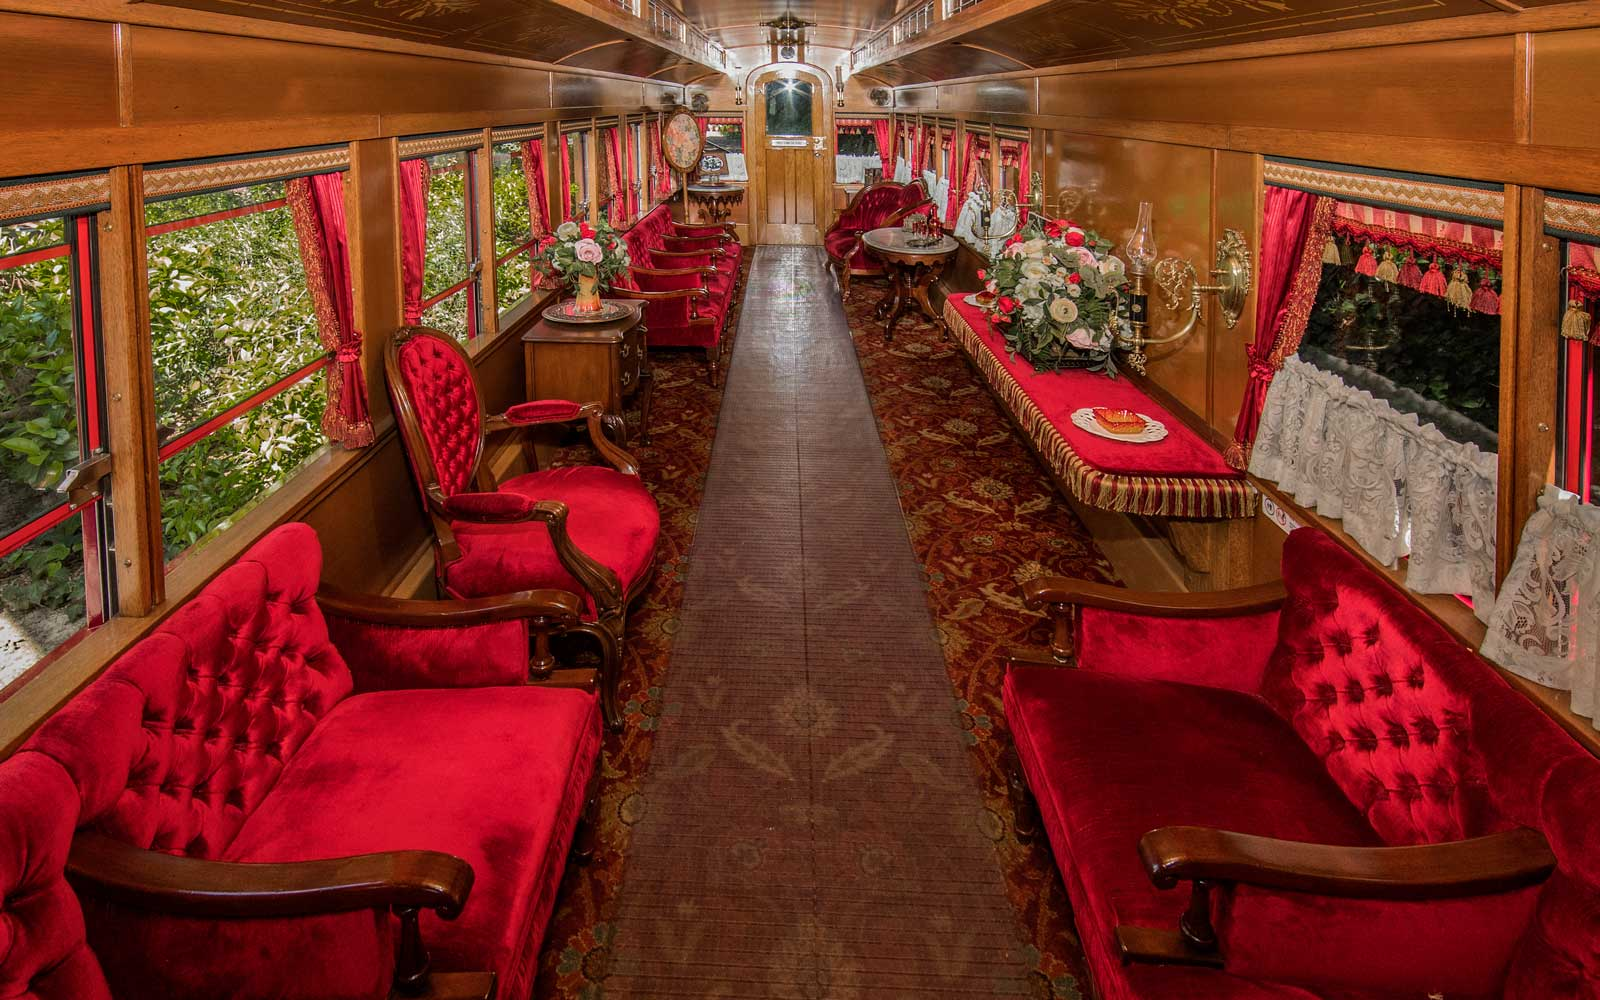 Luxury Railroad Car